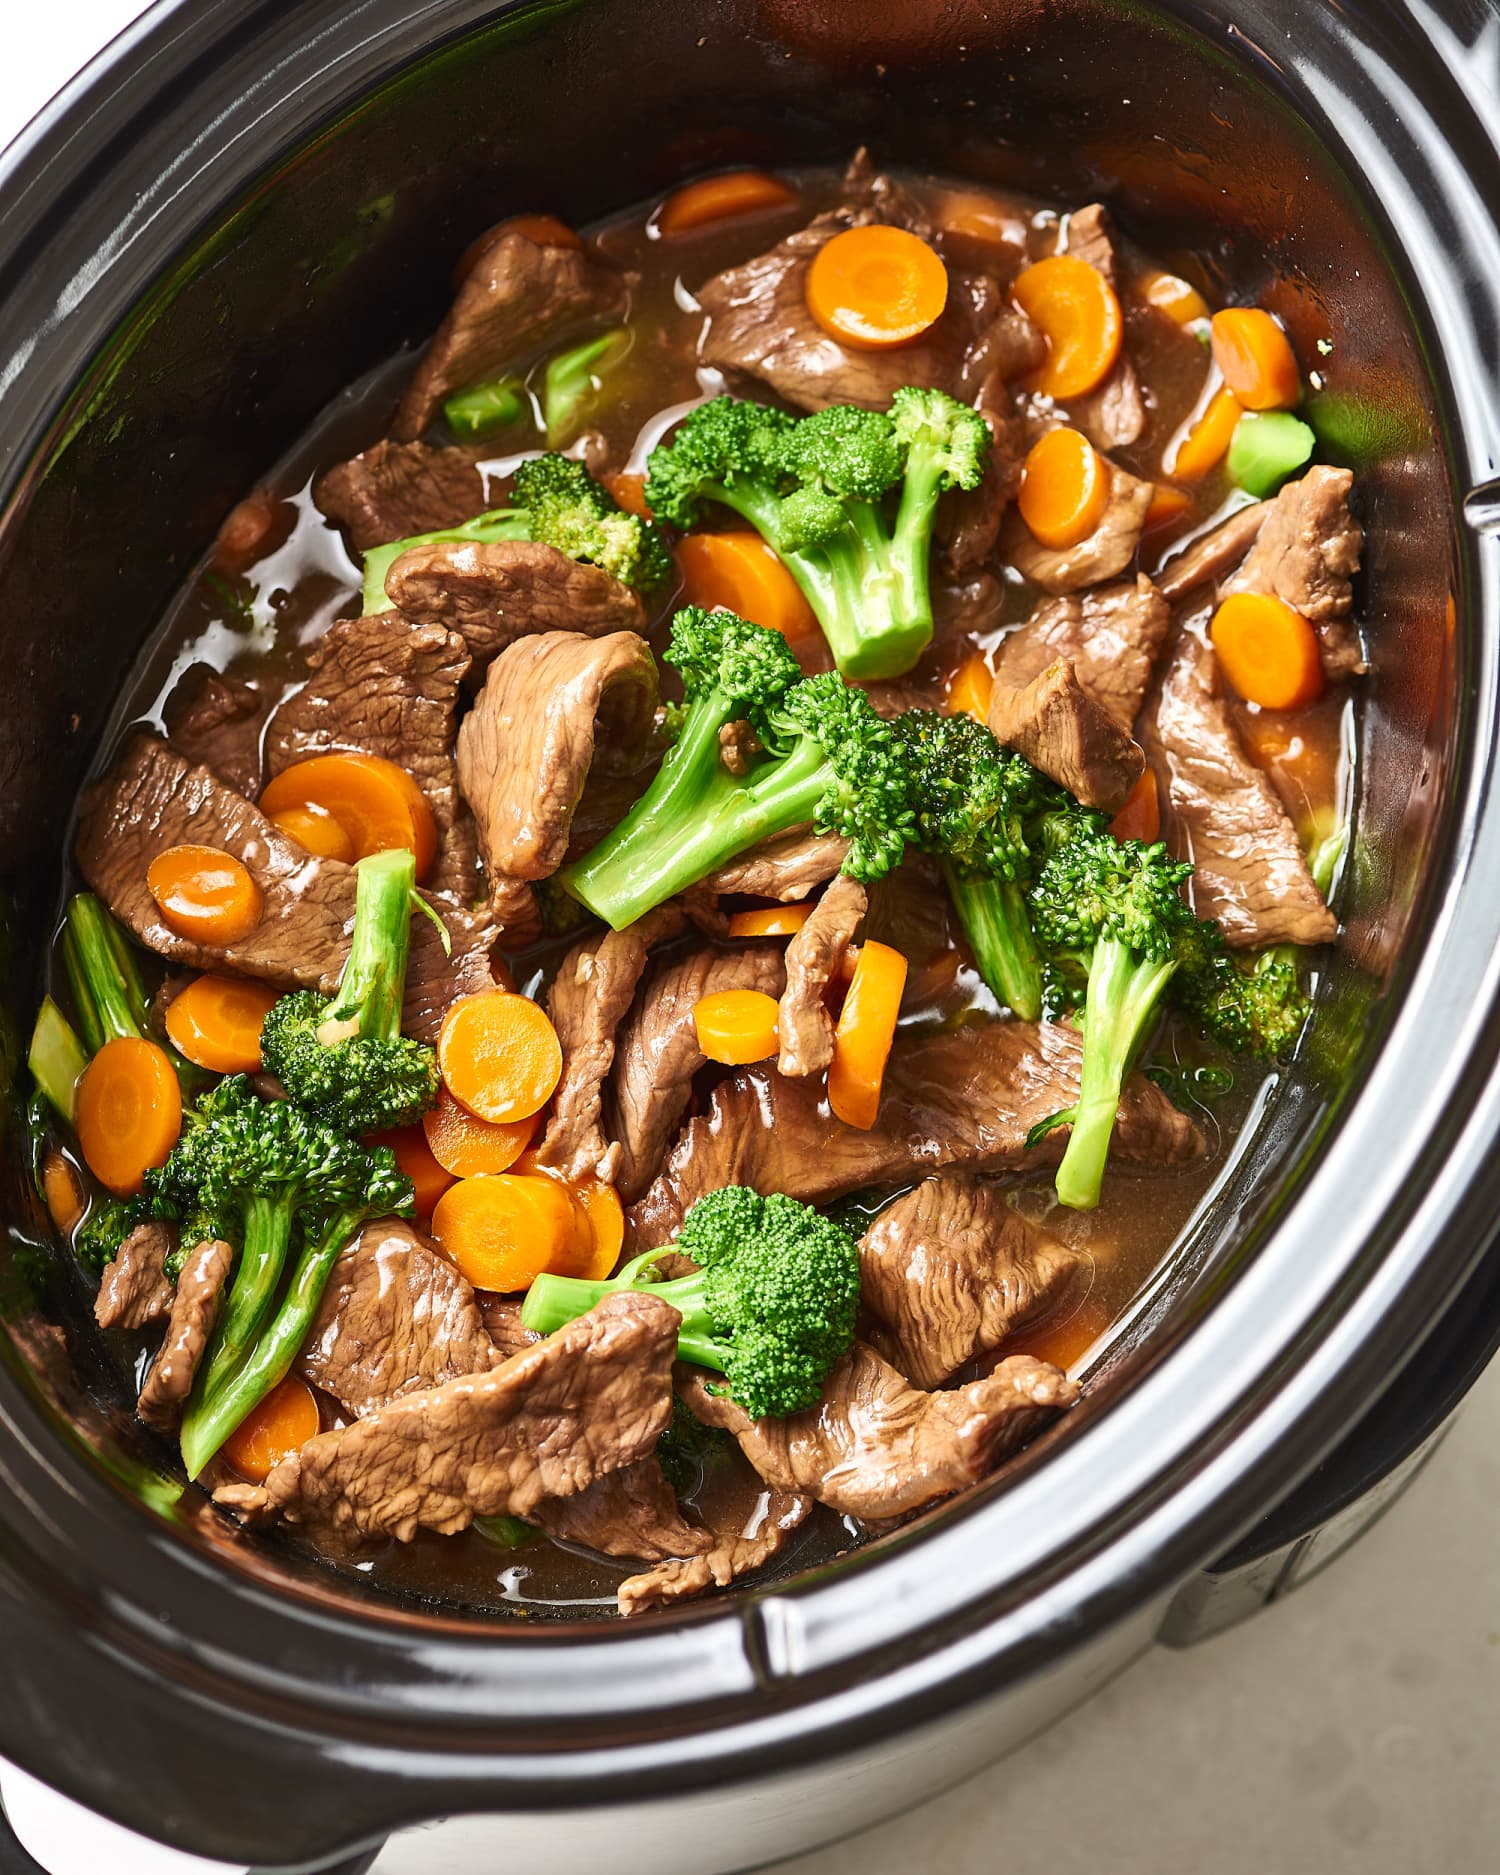 How To Make Better-than-Takeout Beef and Broccoli in the Slow Cooker